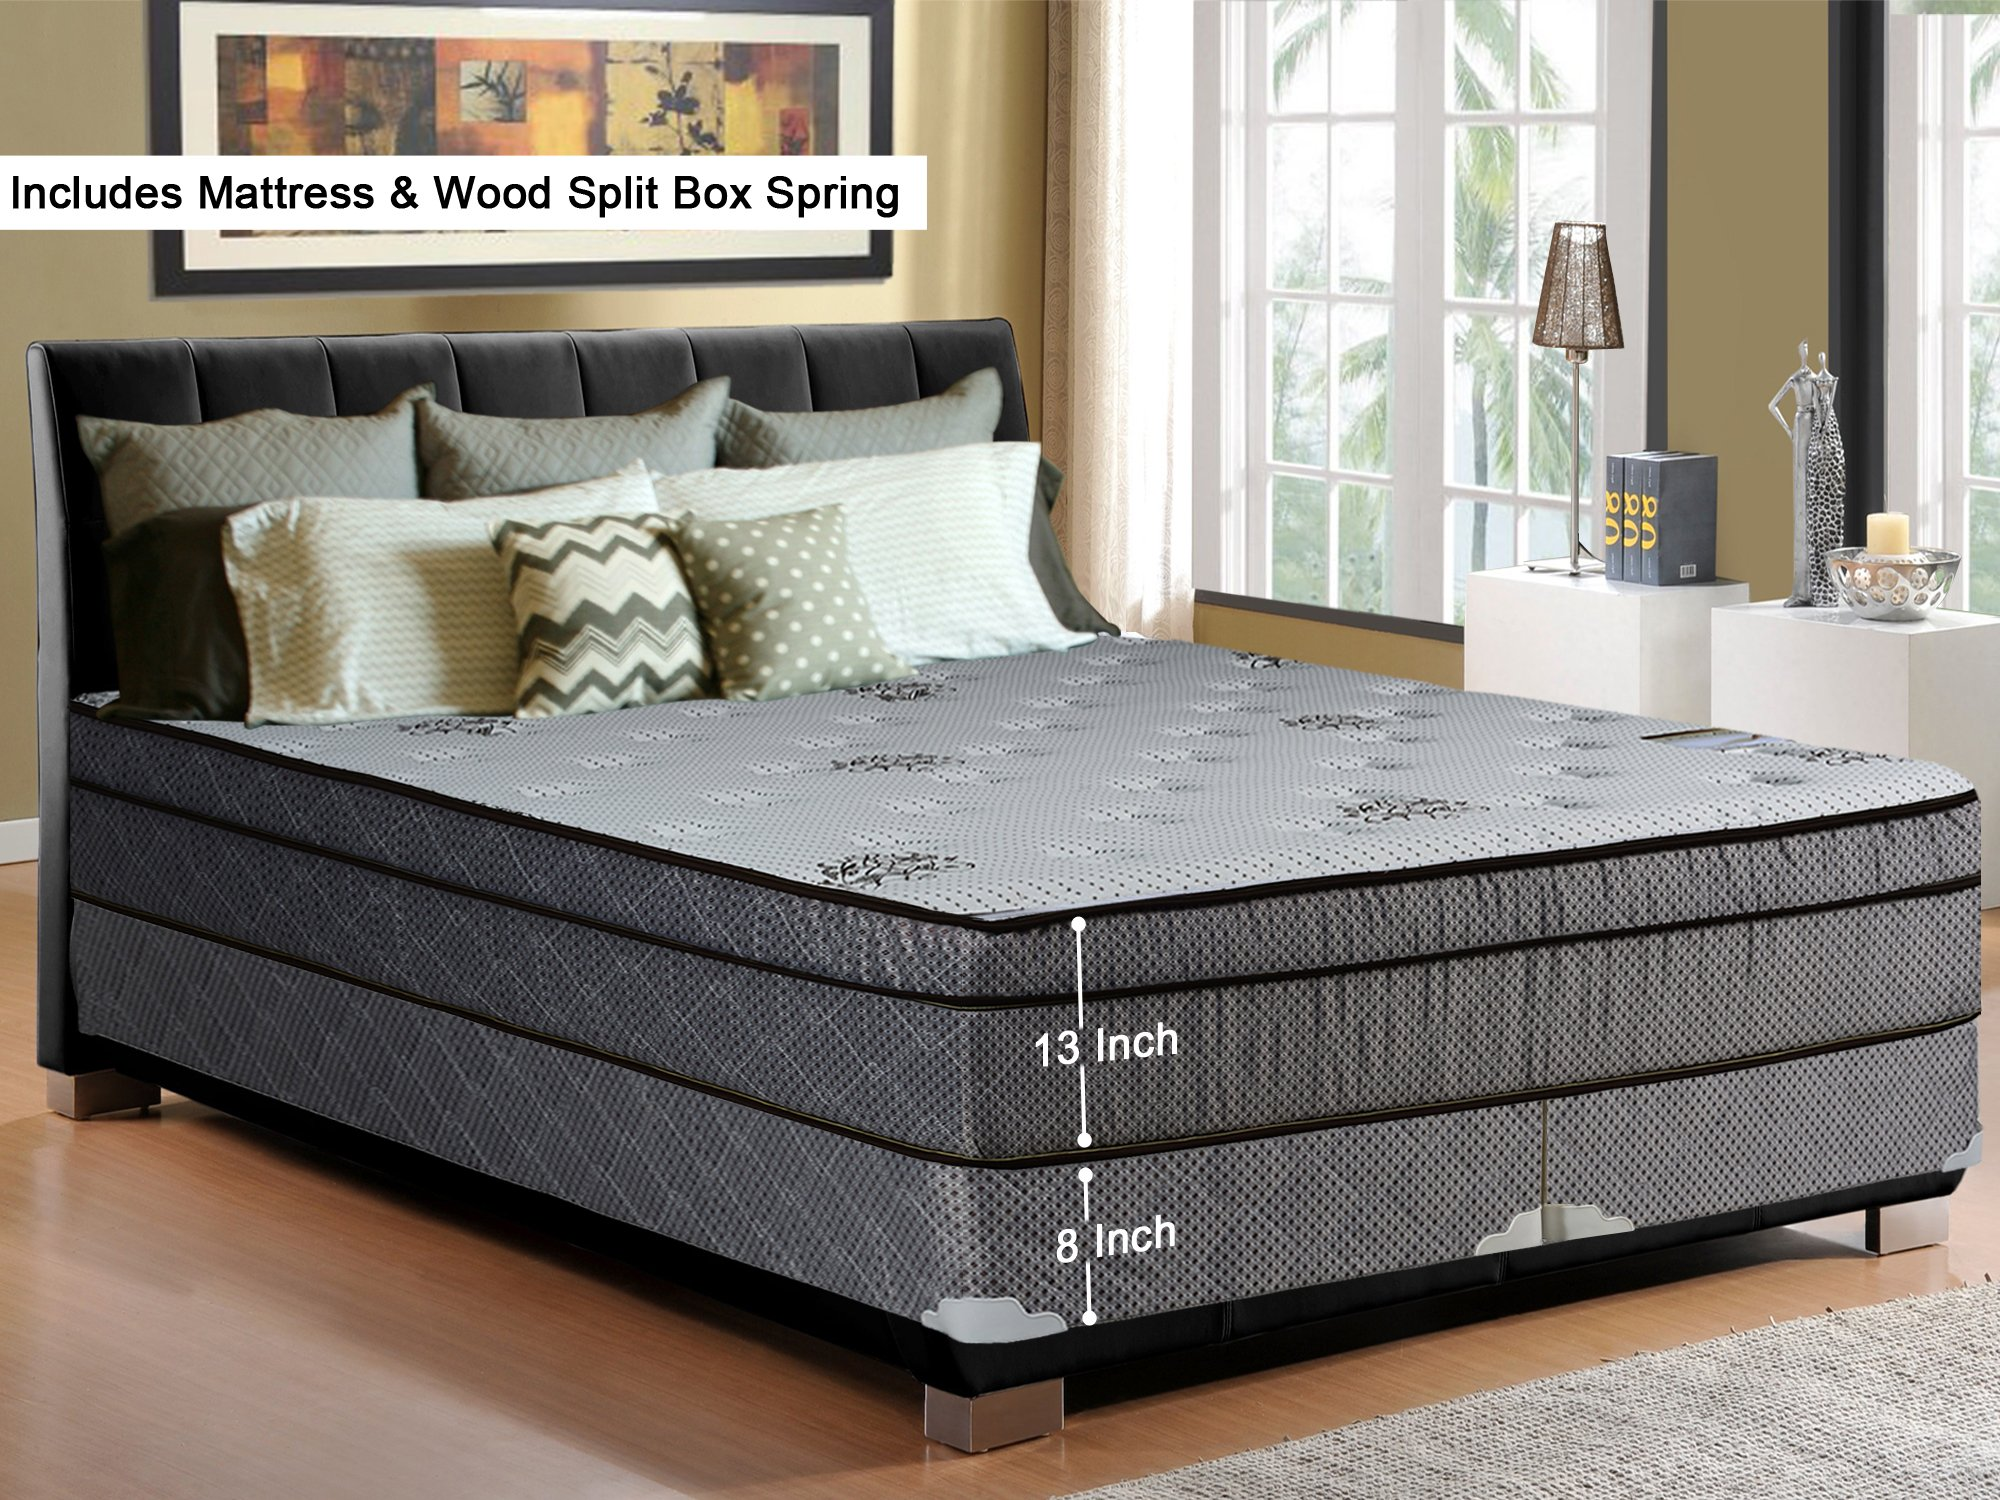 Continental Sleep, 13-Inch Soft Foam Encased Hybrid Eurotop Pillowtop Innerspring Mattress And Split Wood Traditional Box Spring/Foundation Set, King Size 79'' x 78'' by Continental Sleep